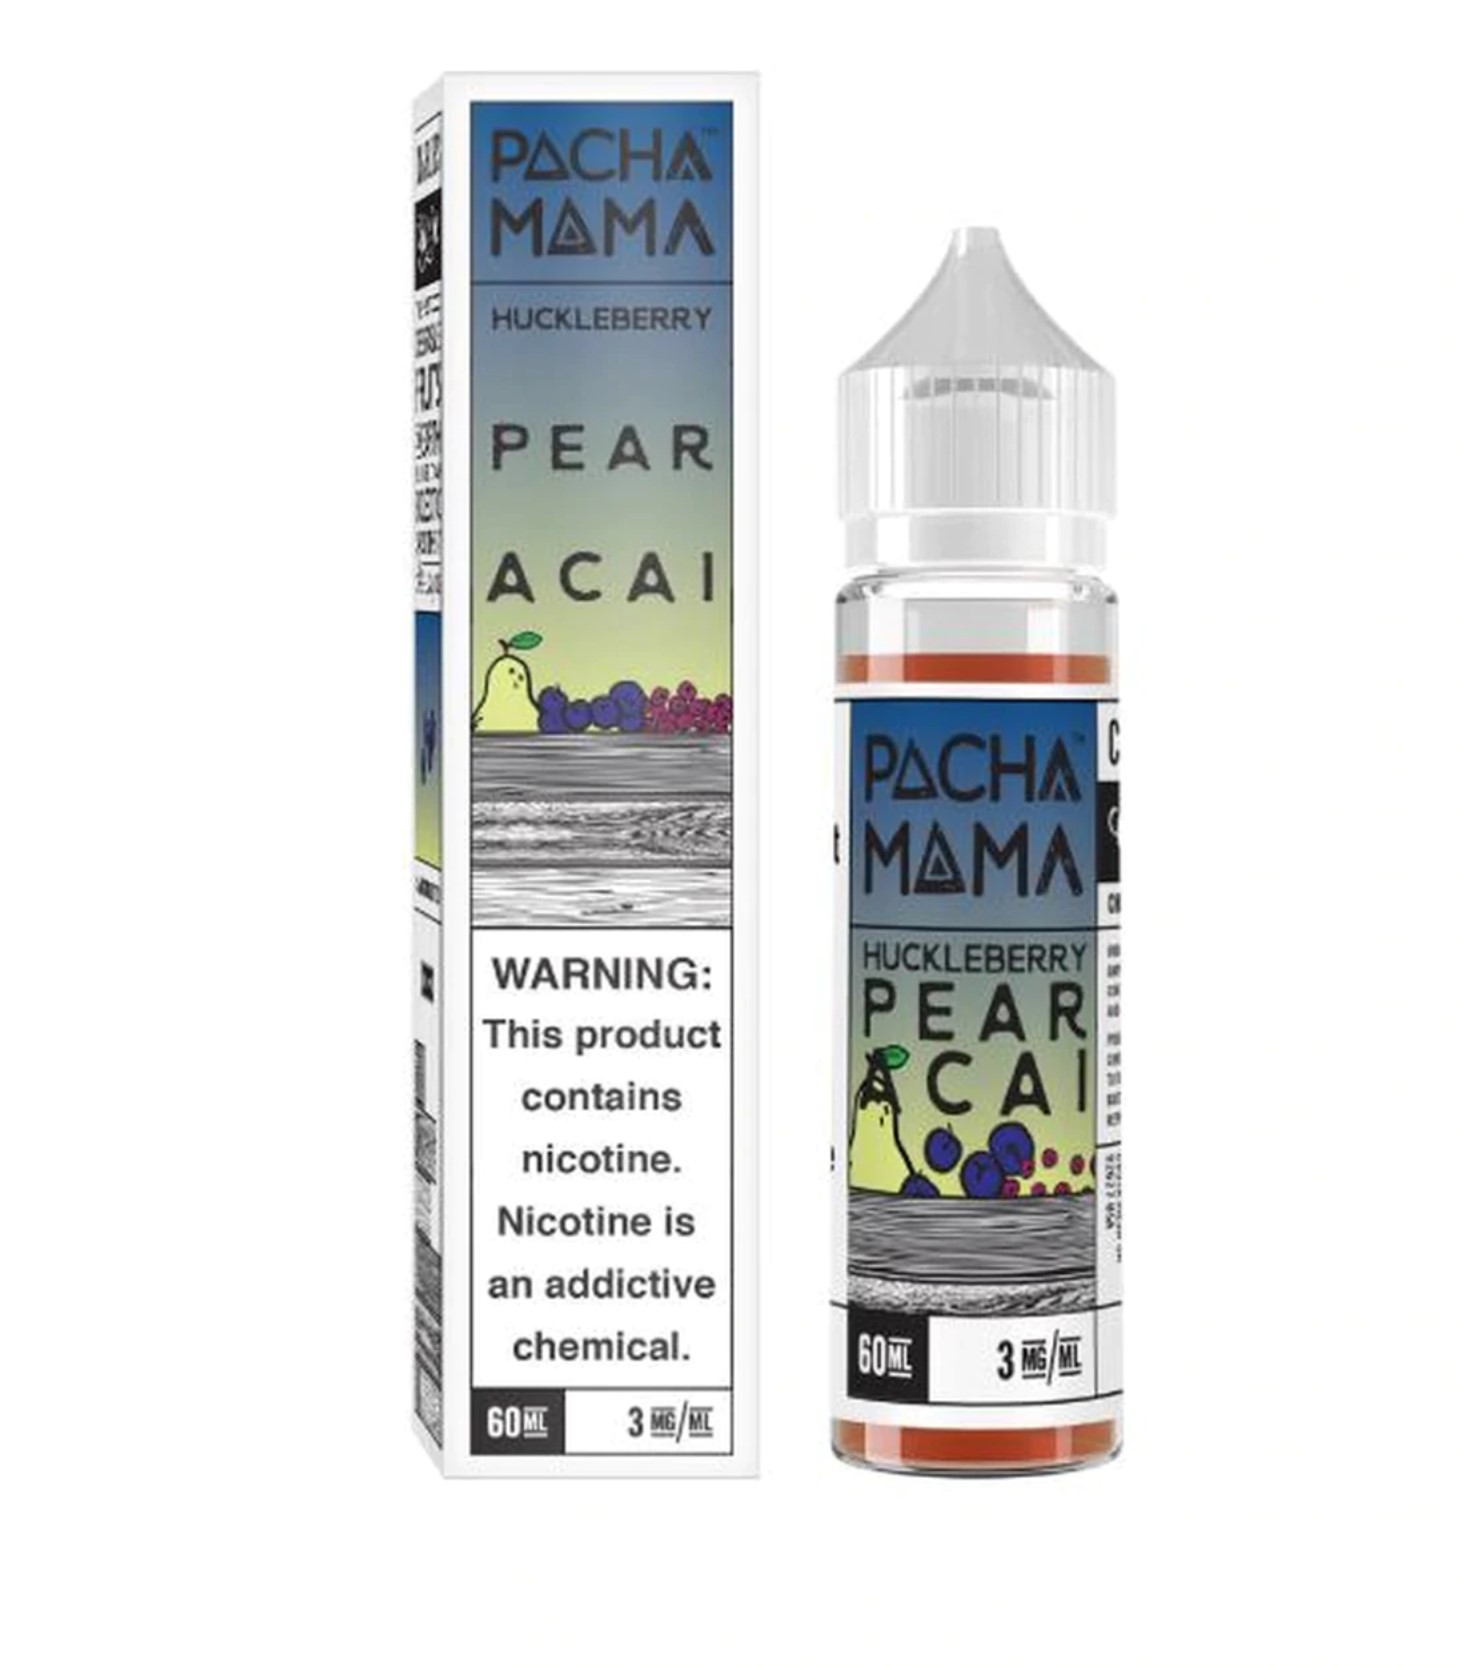 Pachamama Huckleberry Pear Acai 60ml 3mg